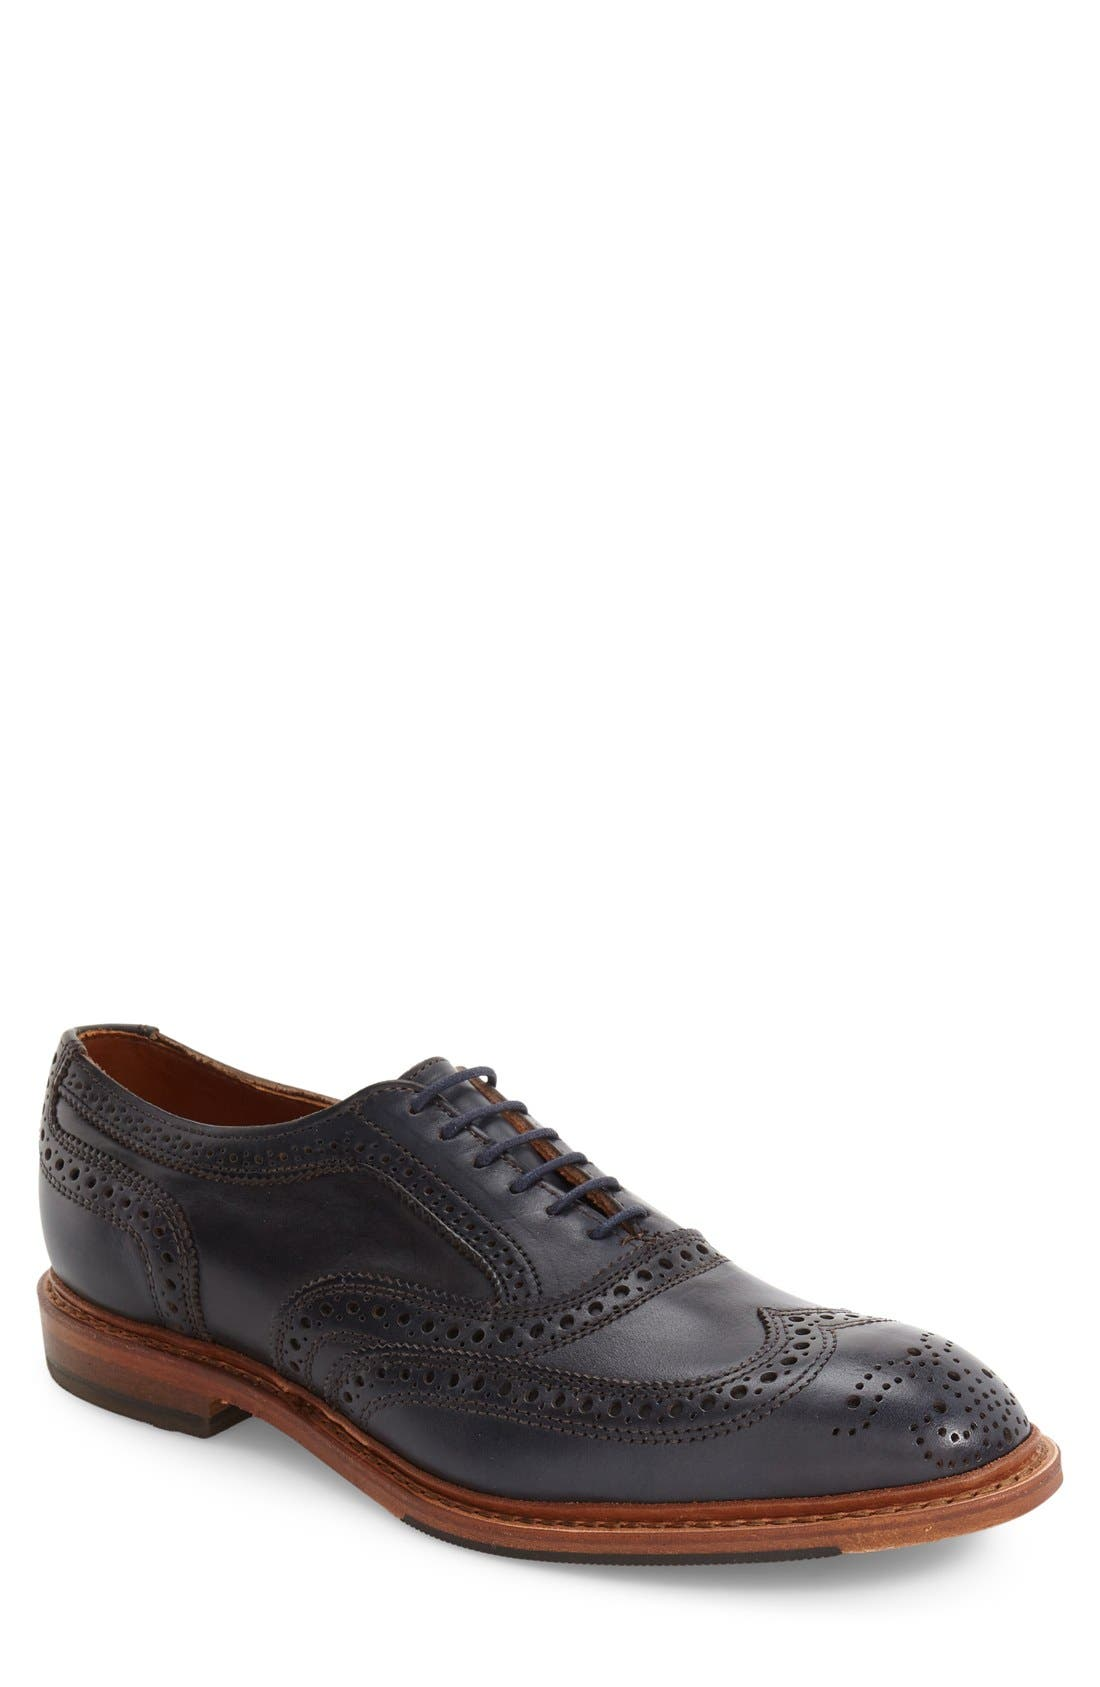 Neumok 2.0 Wingtip,                         Main,                         color, Navy Leather